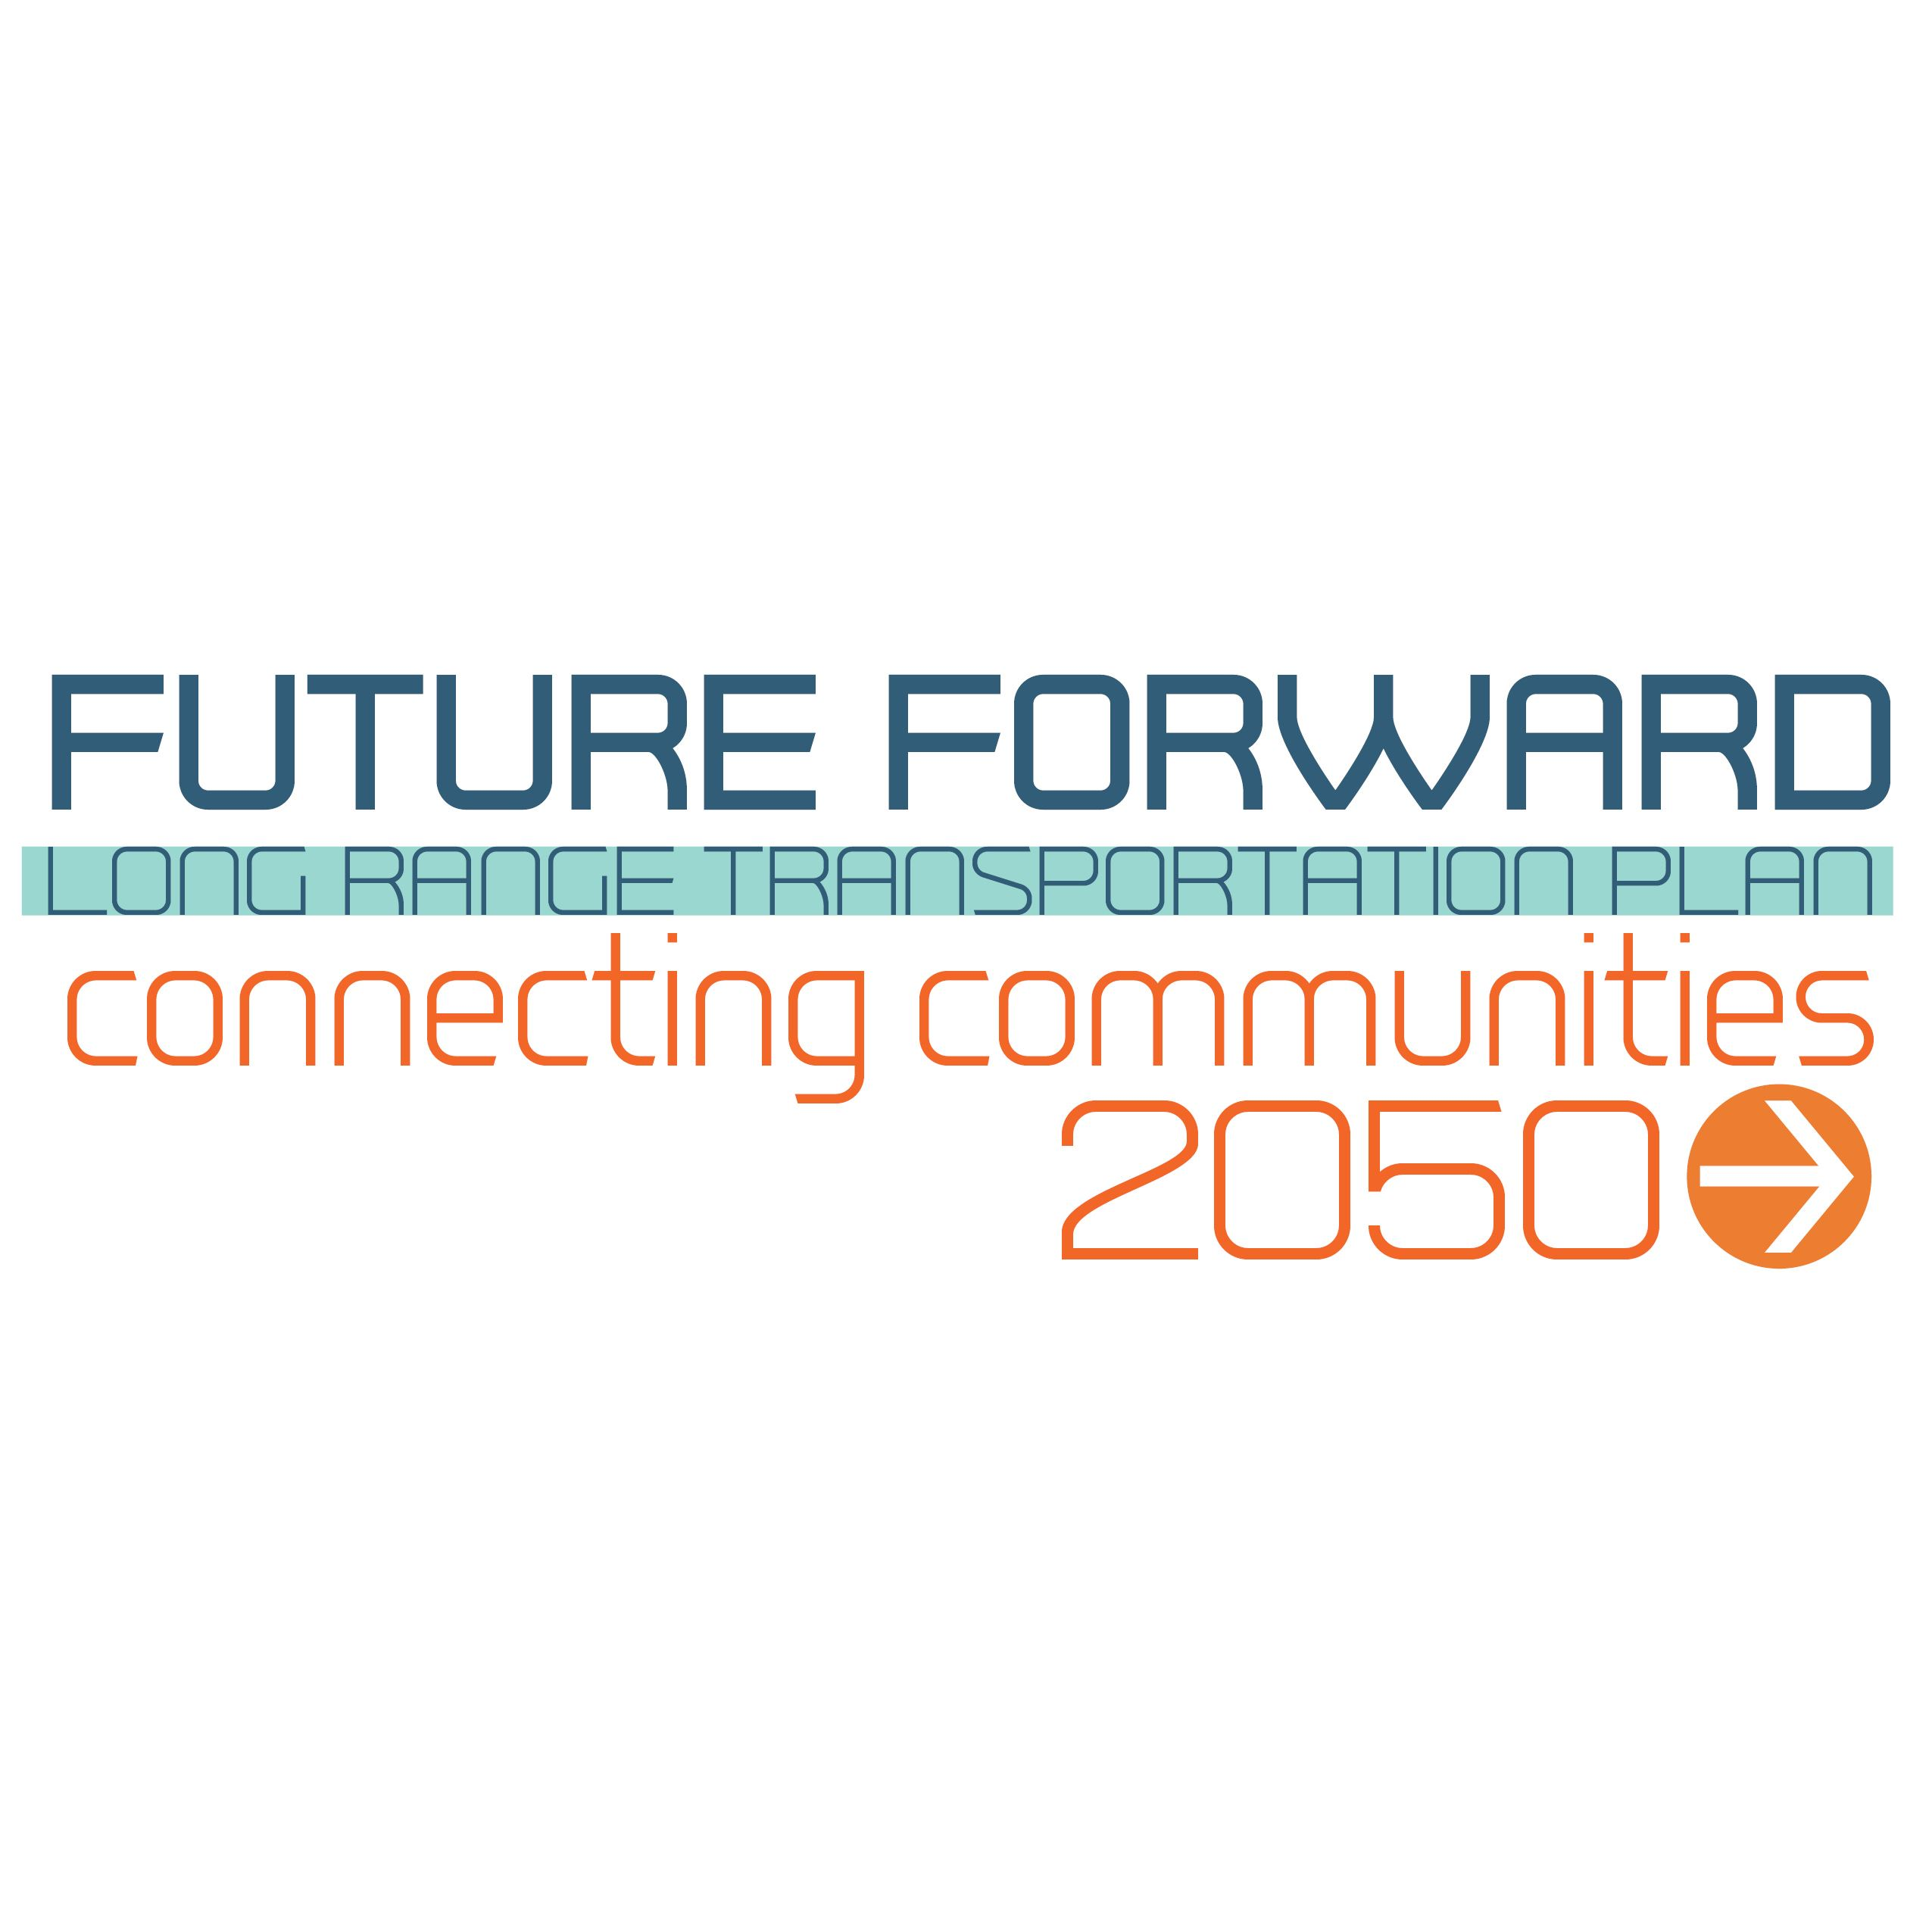 Future Forward 2050